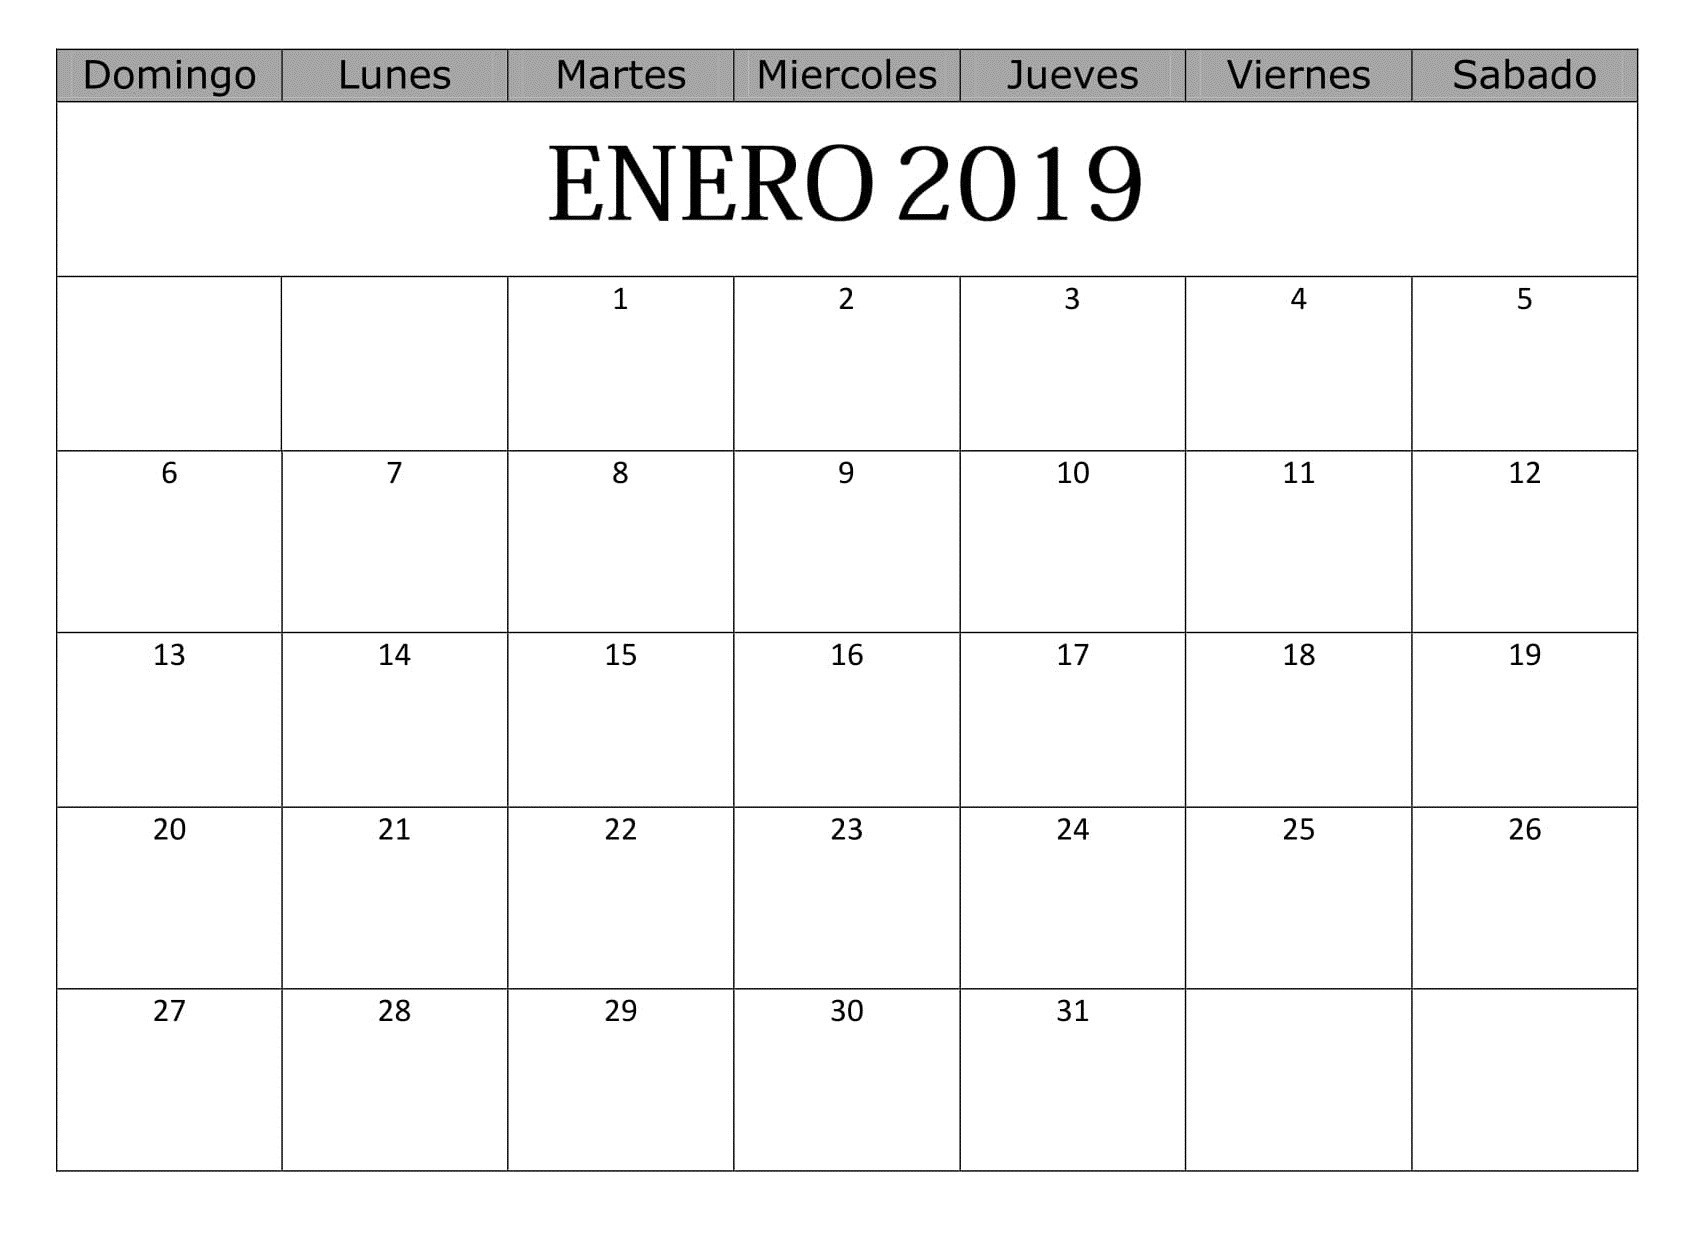 Calendario 2019 Para Imprimir Enero Calendario 2019 Más Recientes Noticias Calendario Del 2019 Chile Of Calendario 2019 Para Imprimir Enero Calendario 2019 Más Populares Medios Calendario Colombia 2019 Para Imprimir